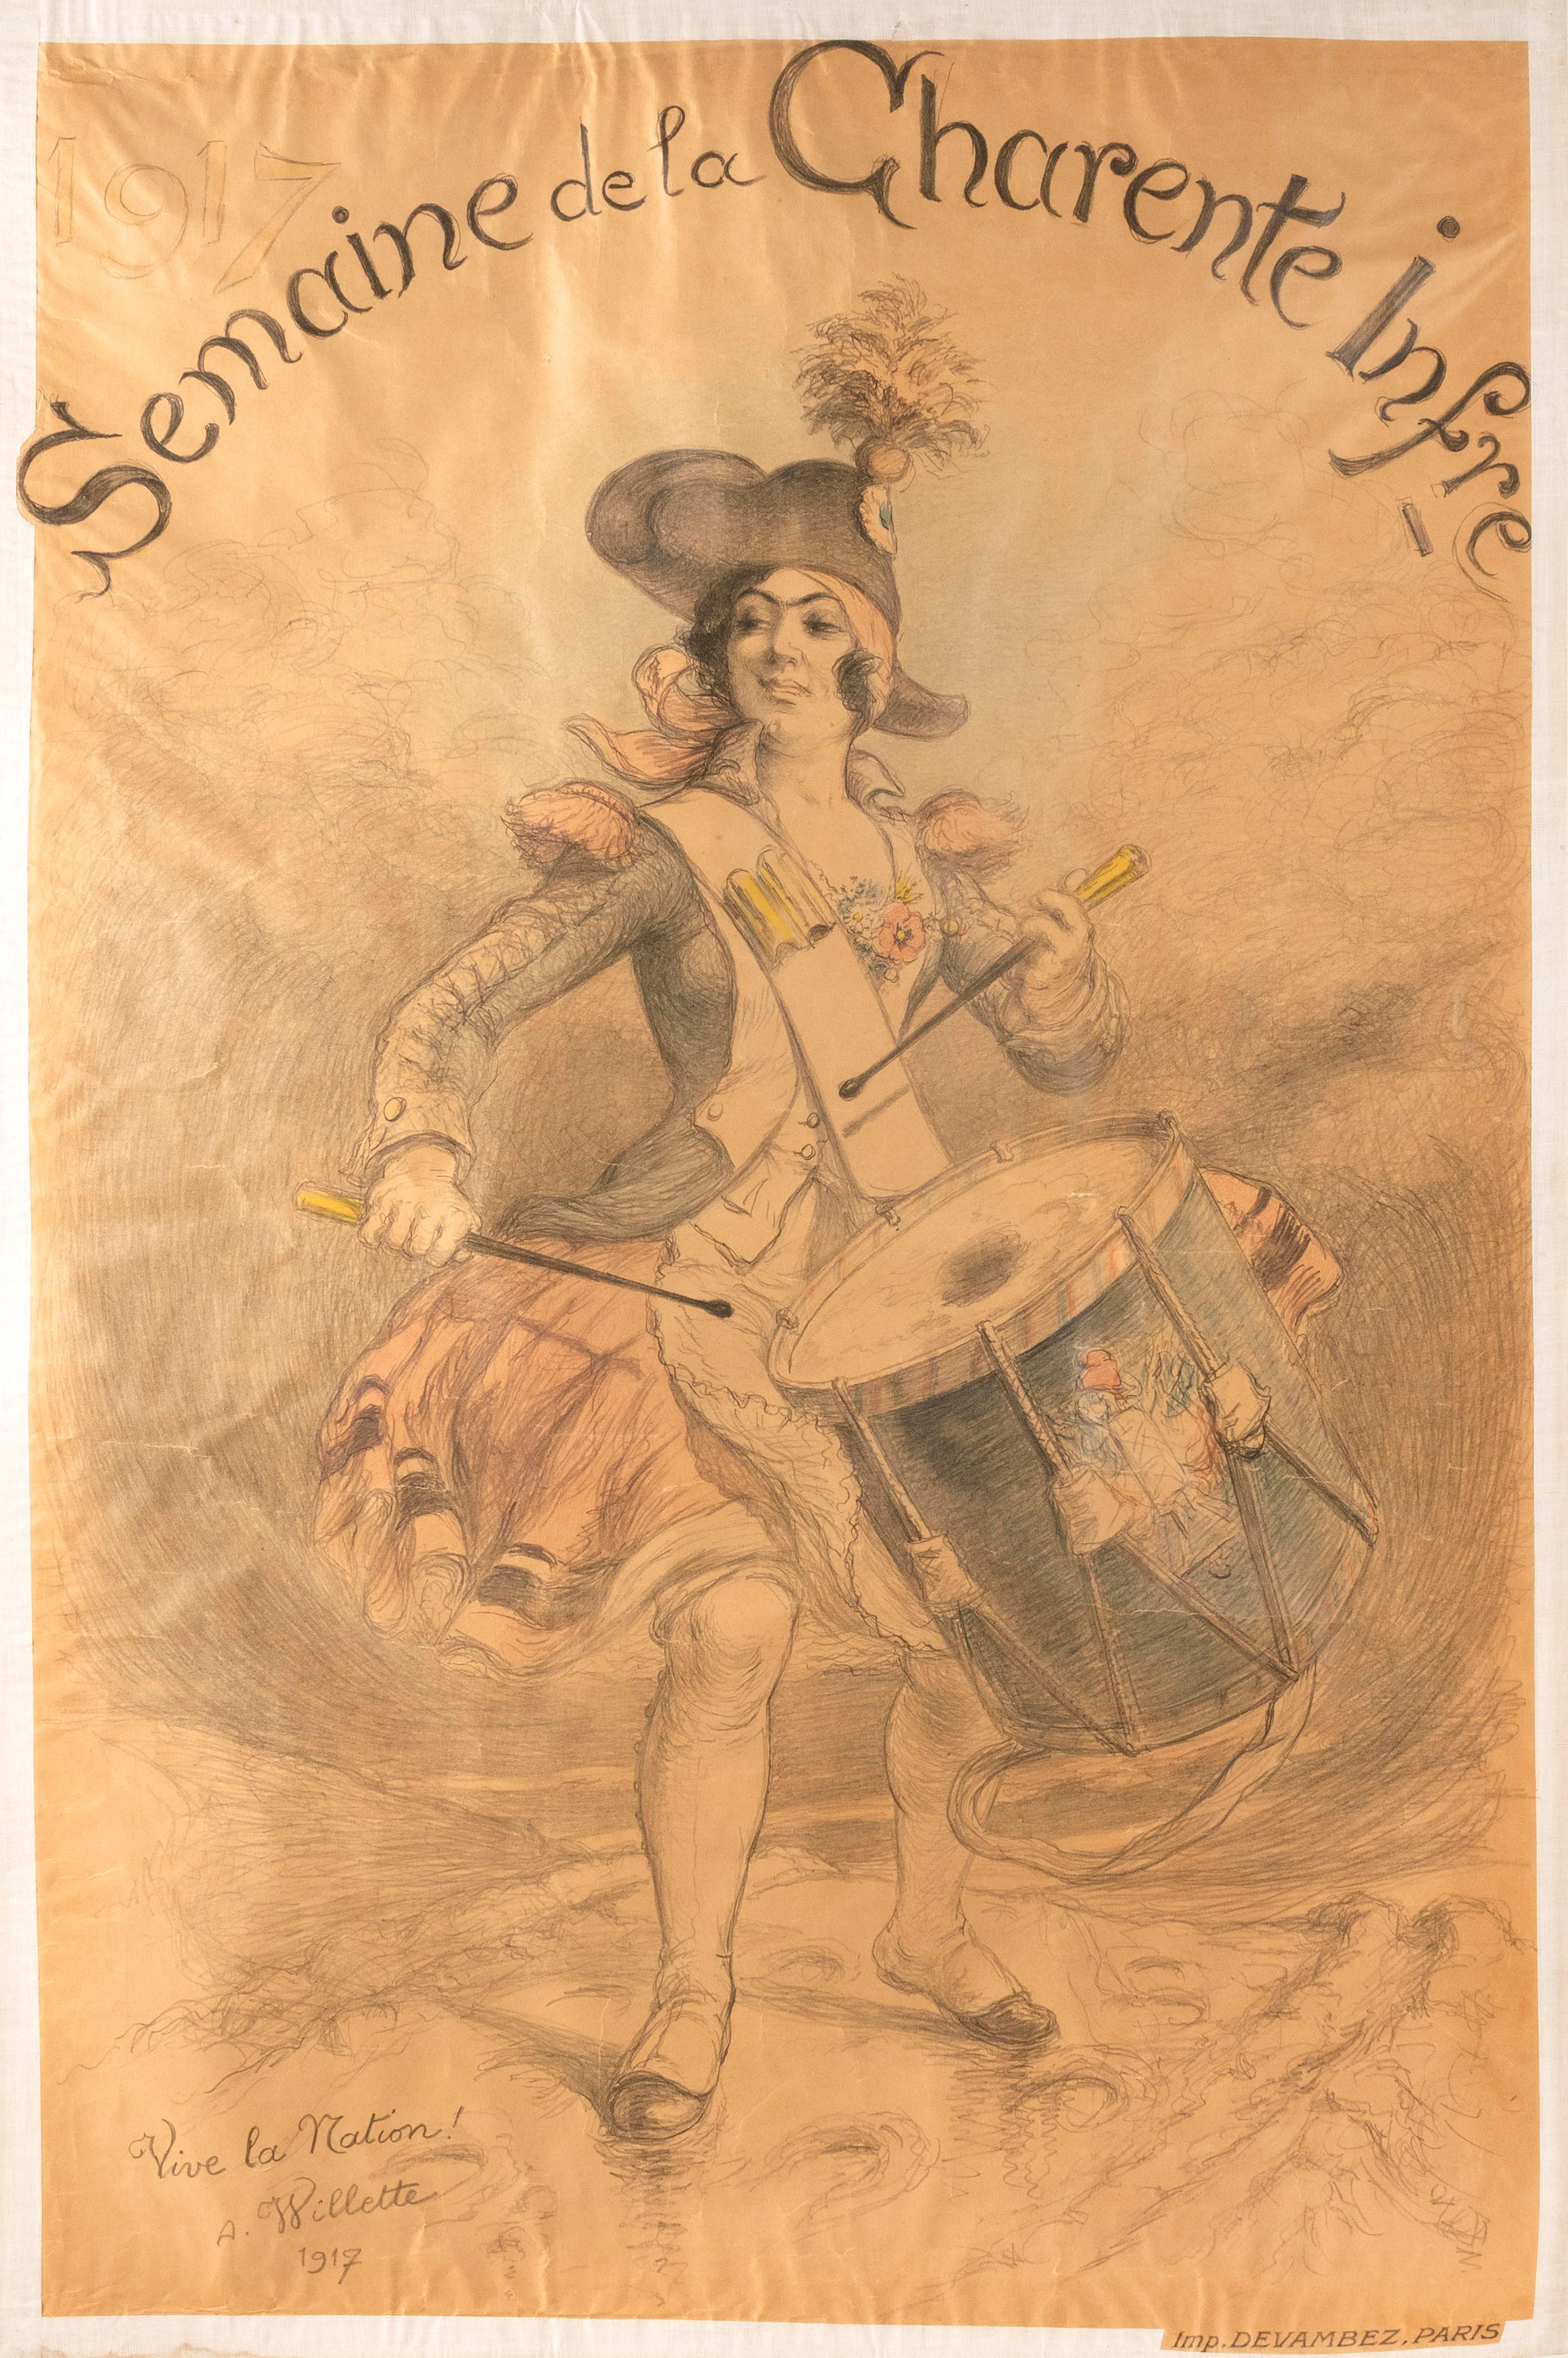 """""""1917 SEMAINE DE LA CHARENTE INFRE"""" WORLD WAR I POSTER By Adolphe Willette, published by Devambez, Paris. Depicts Marianne in French..."""